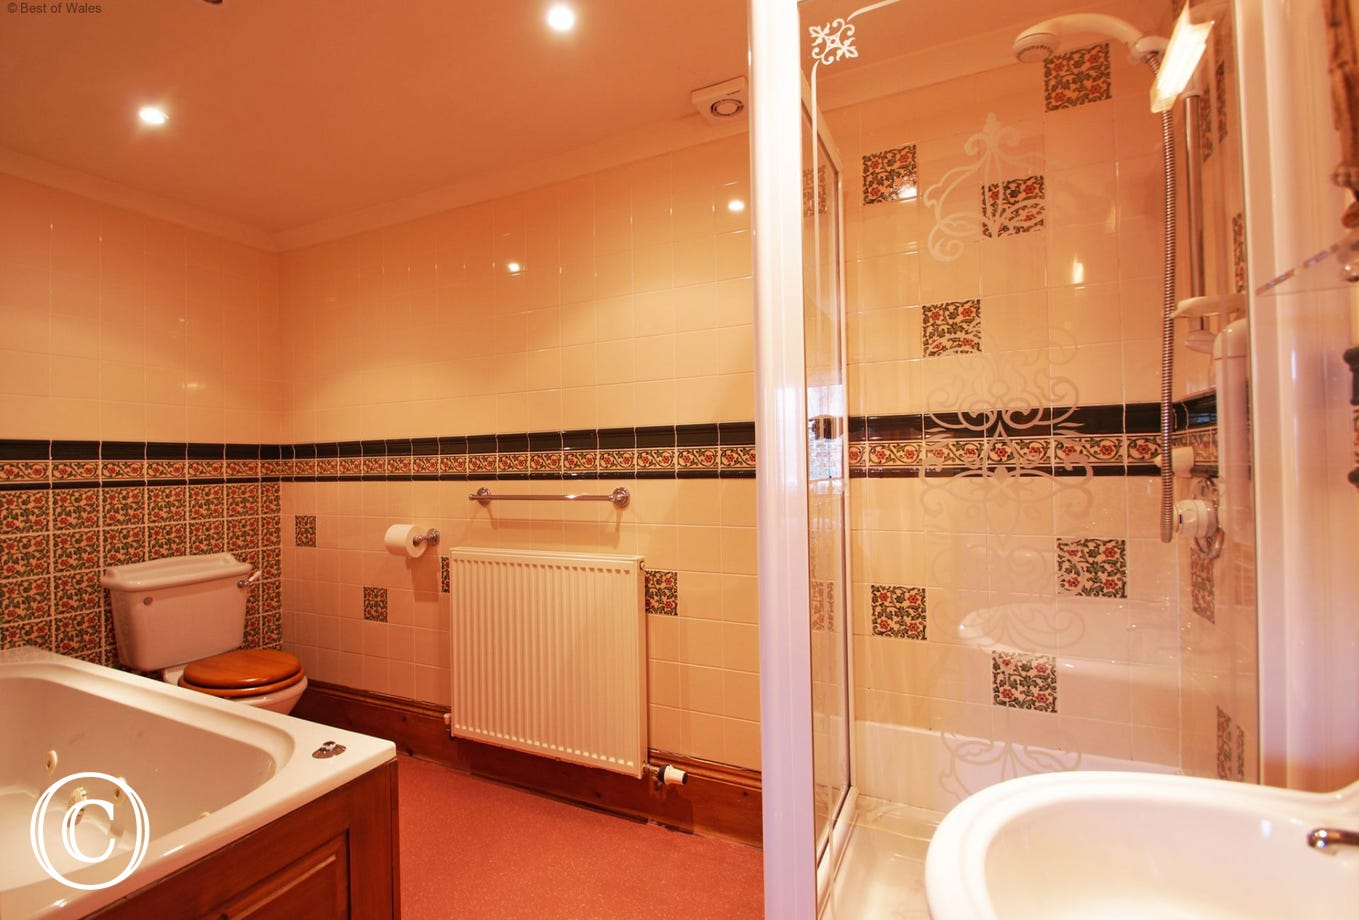 The ensuite has a shower cubicle and a large whirlpool type bath